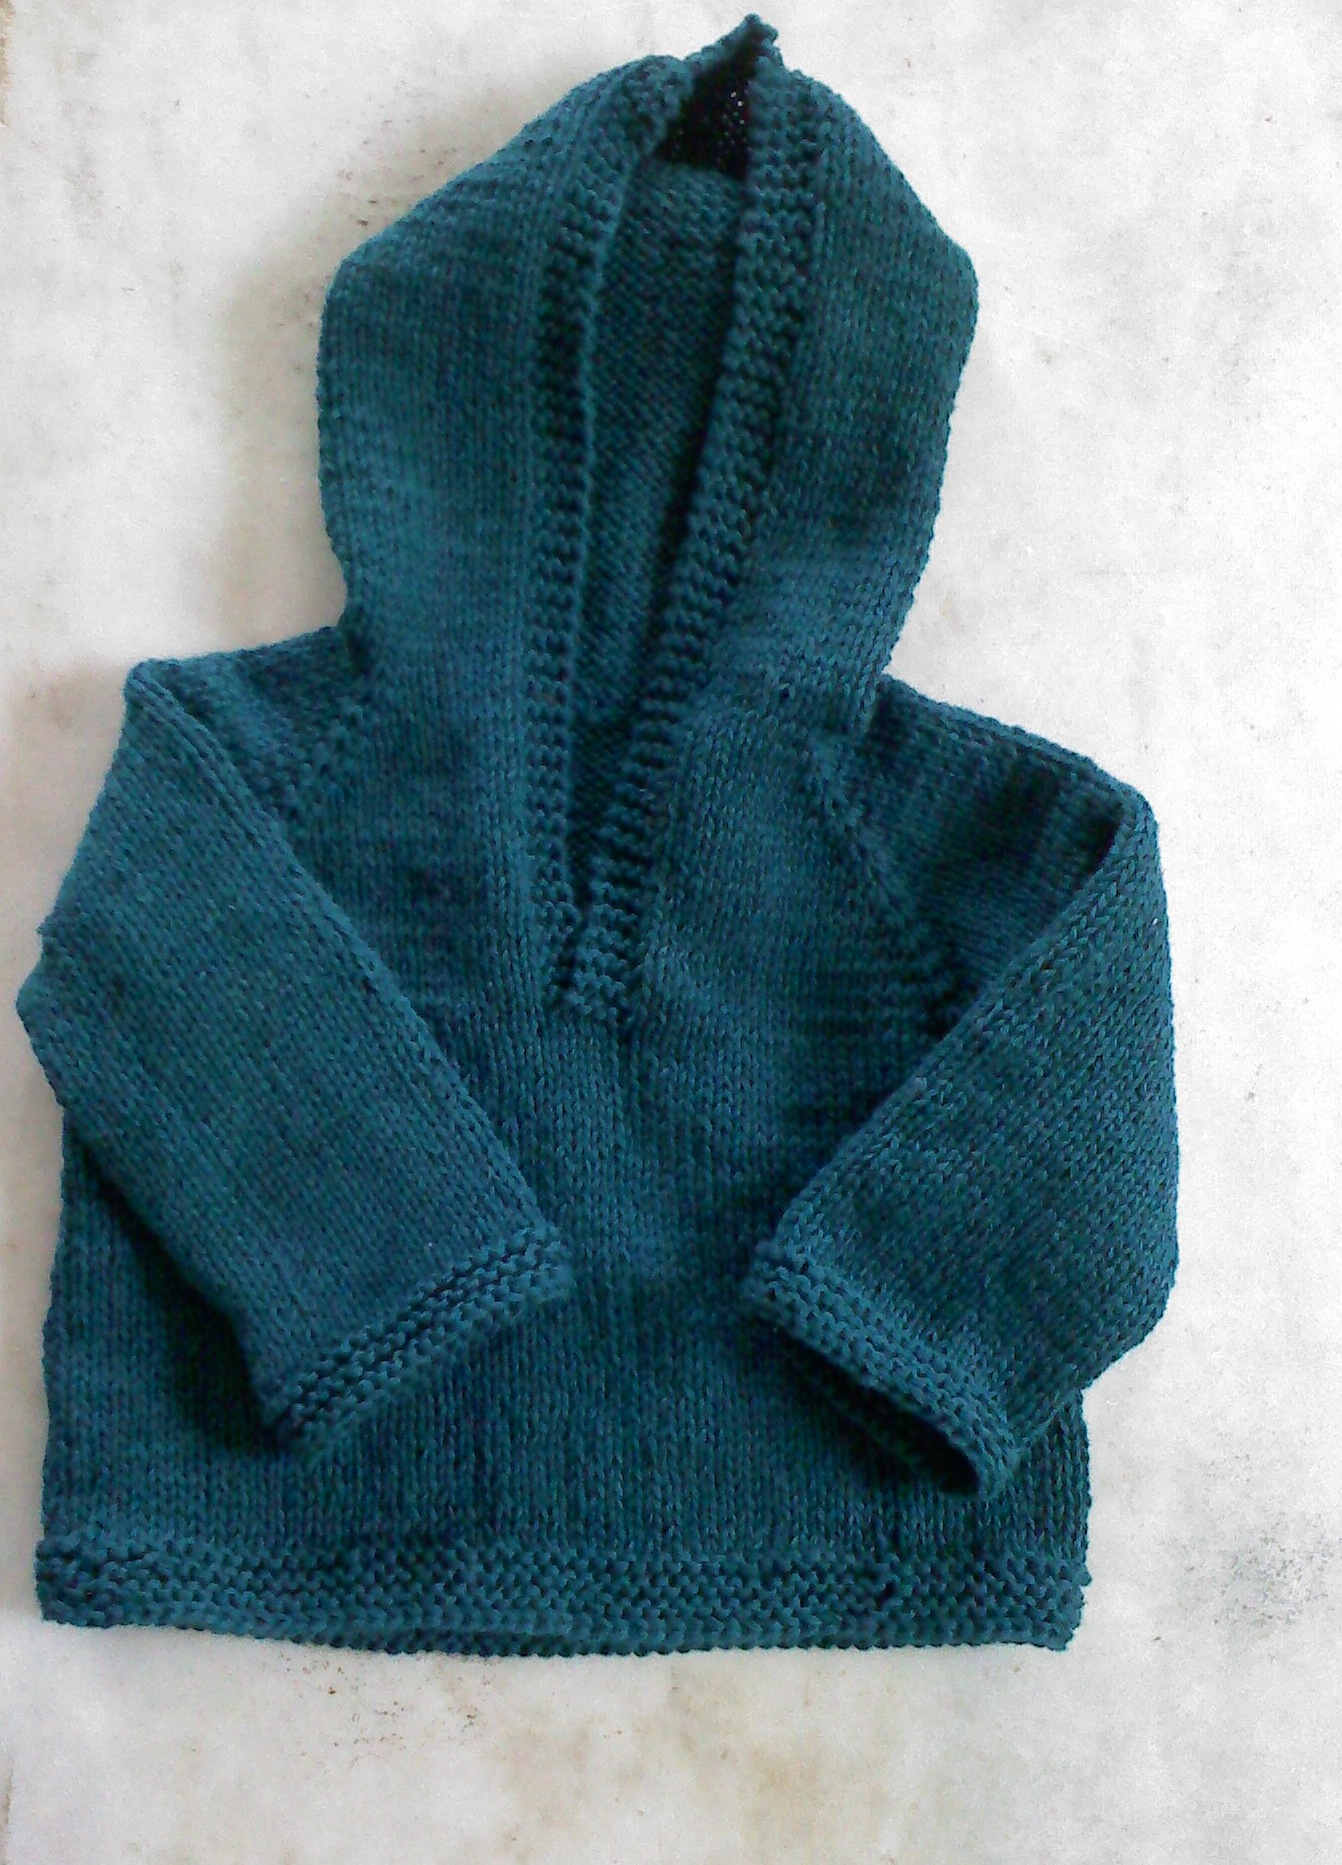 Hoodie Knitting Pattern For Babies And Toddlers : Baby knits, part 2 Word Lily